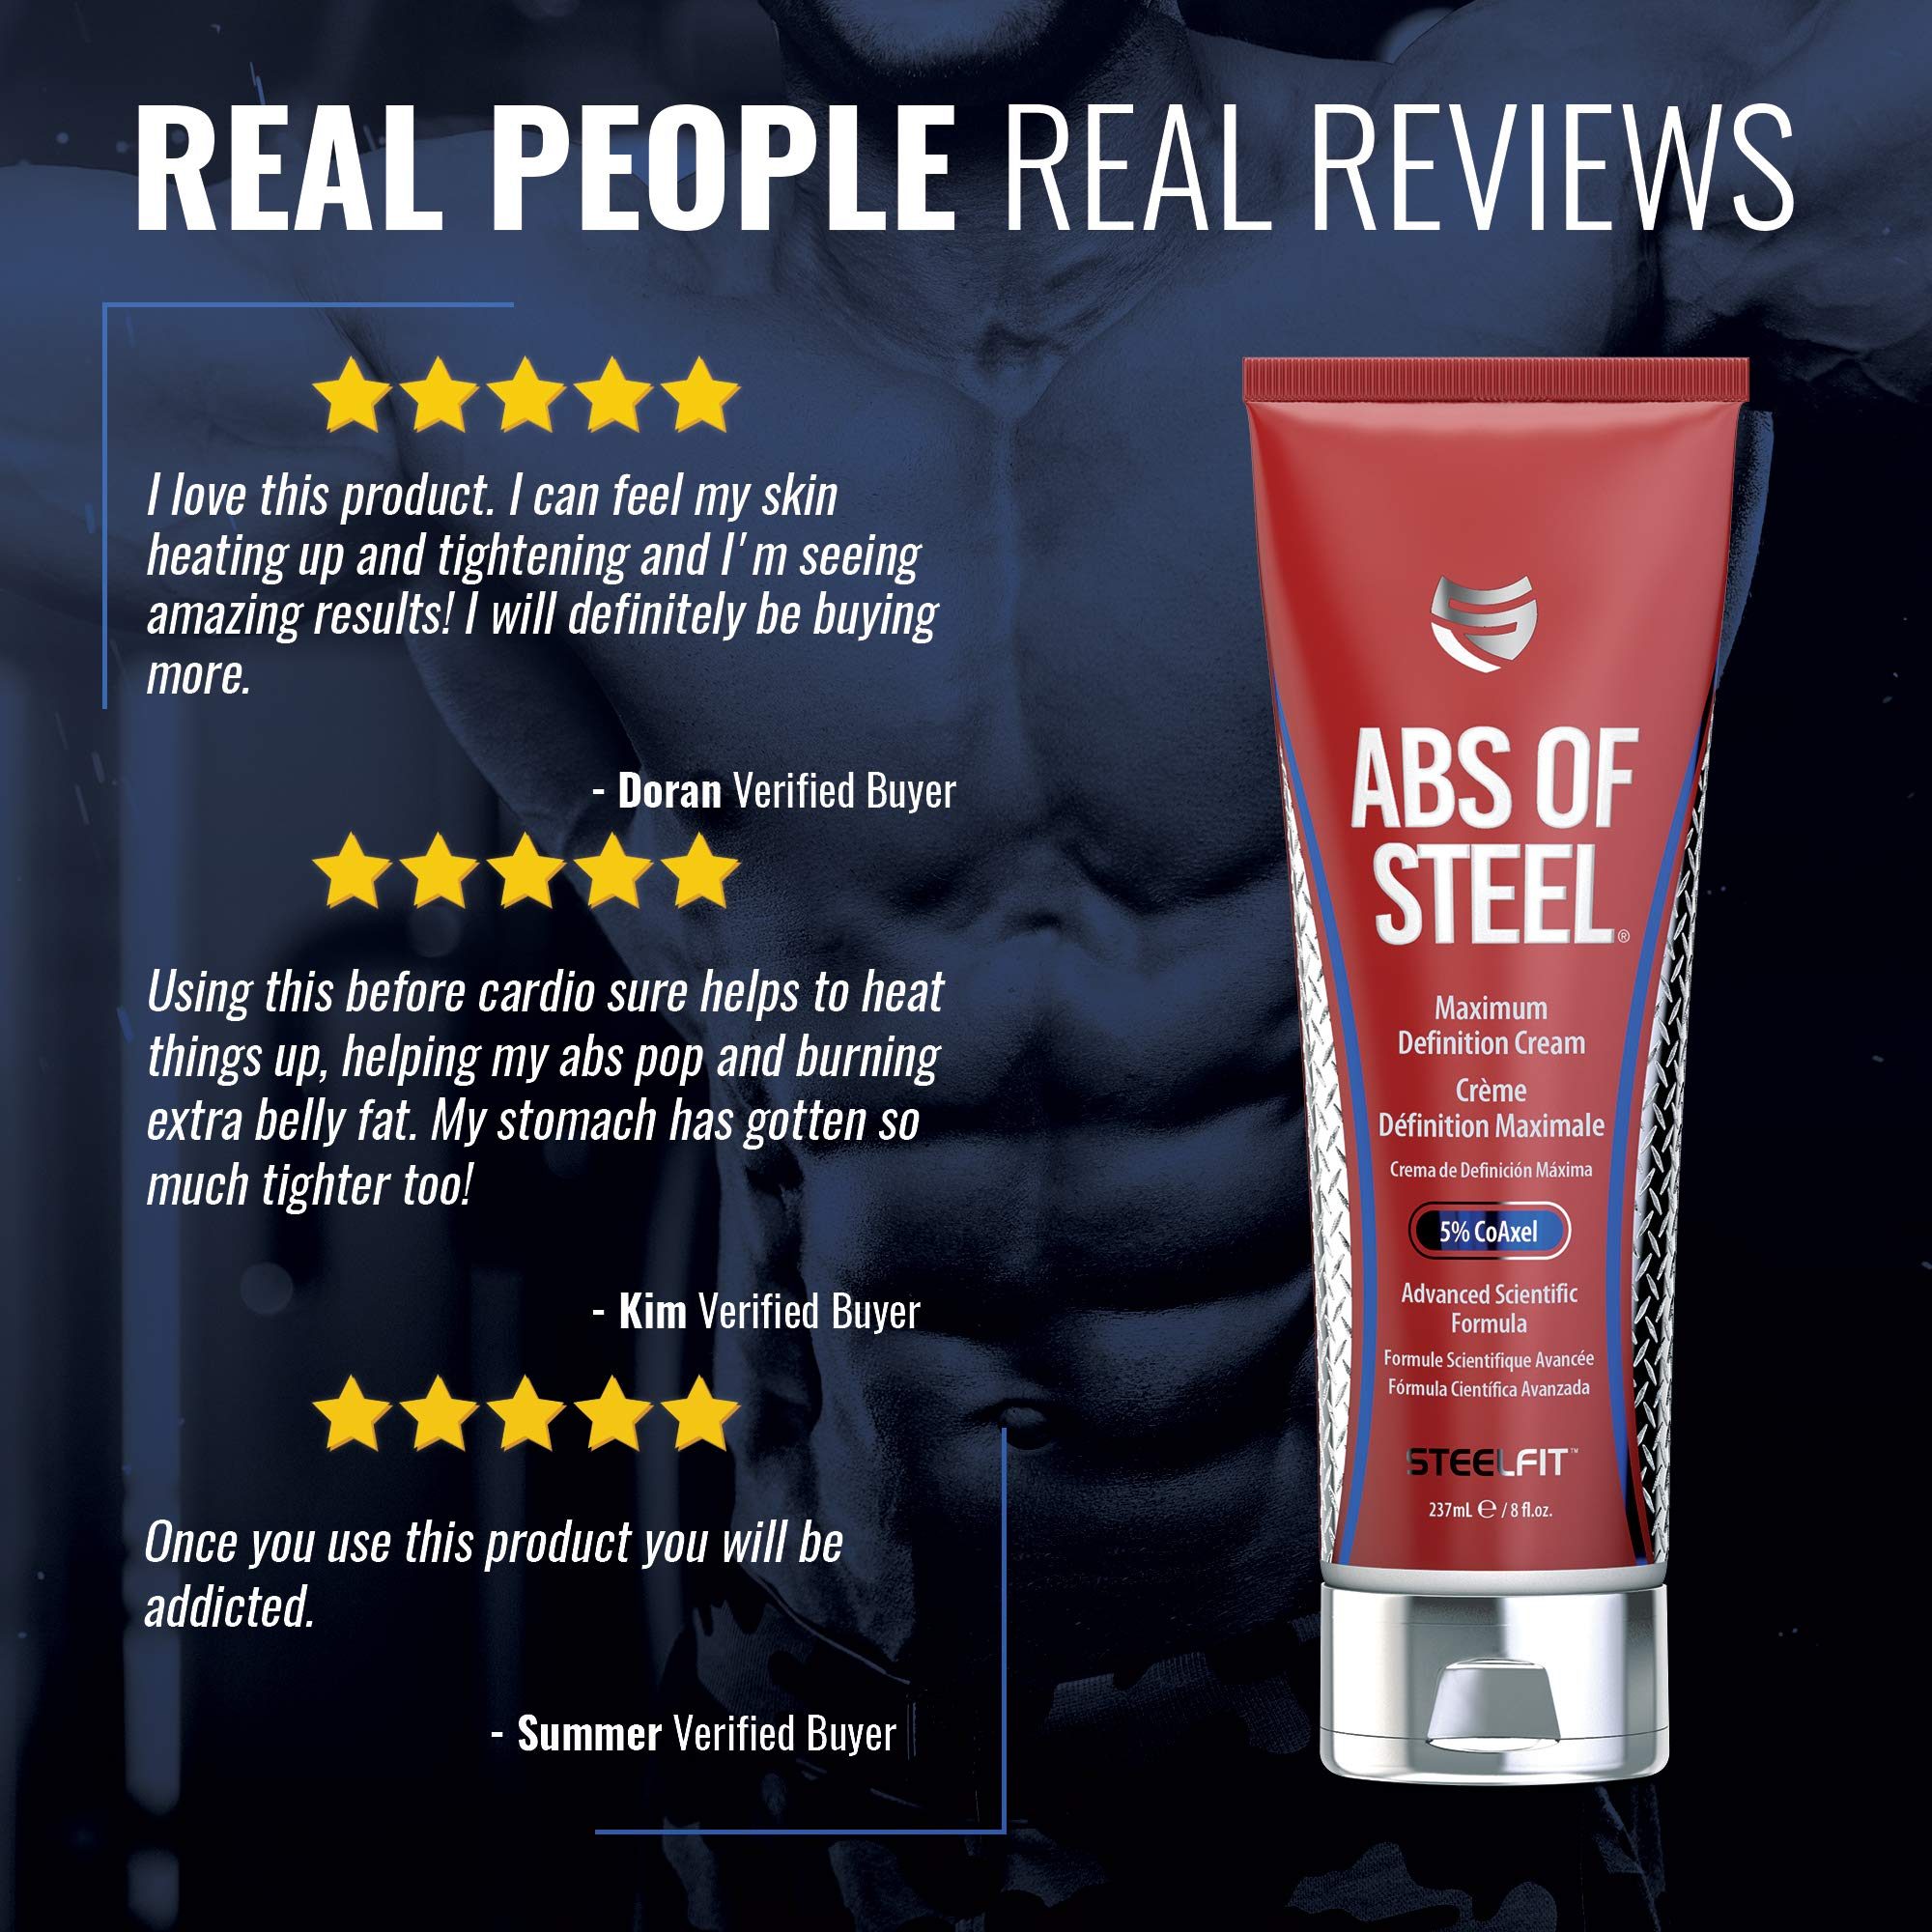 SteelFit Abs of Steel Maximum Definition Cream with 5% Coaxel, 8 fl oz (237ml). by SteelFit (Image #4)